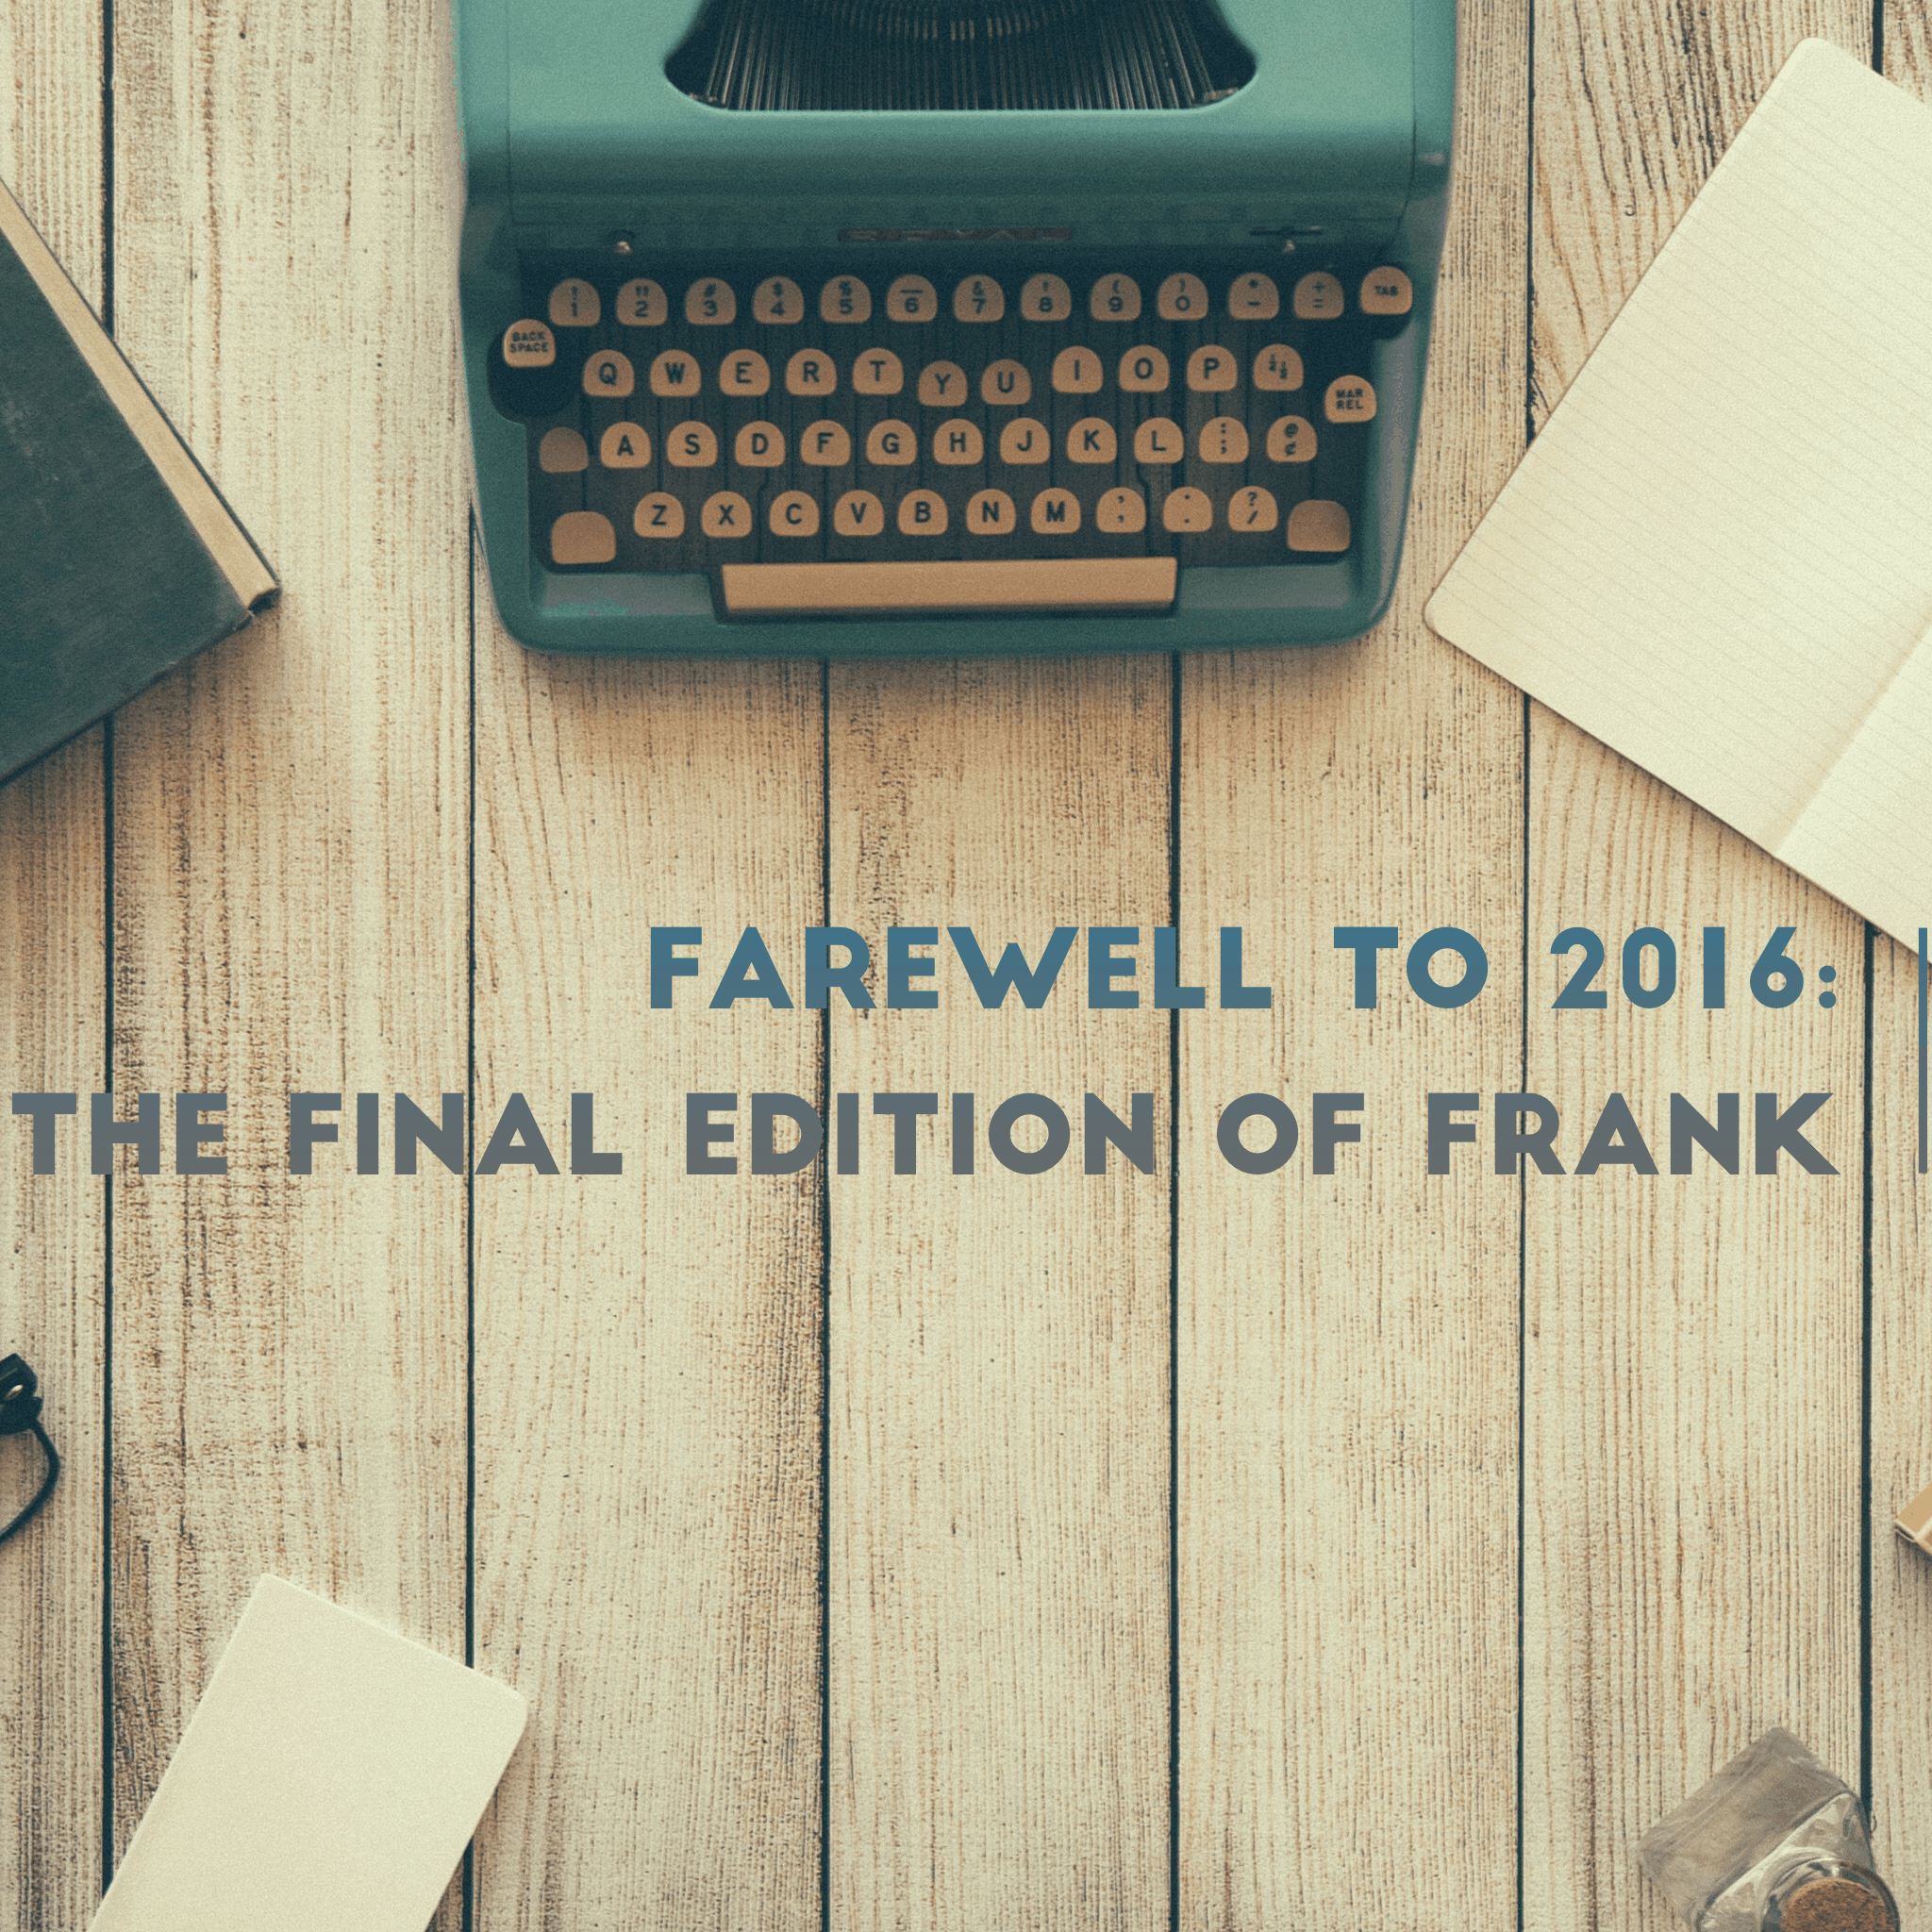 Farewell to Frank